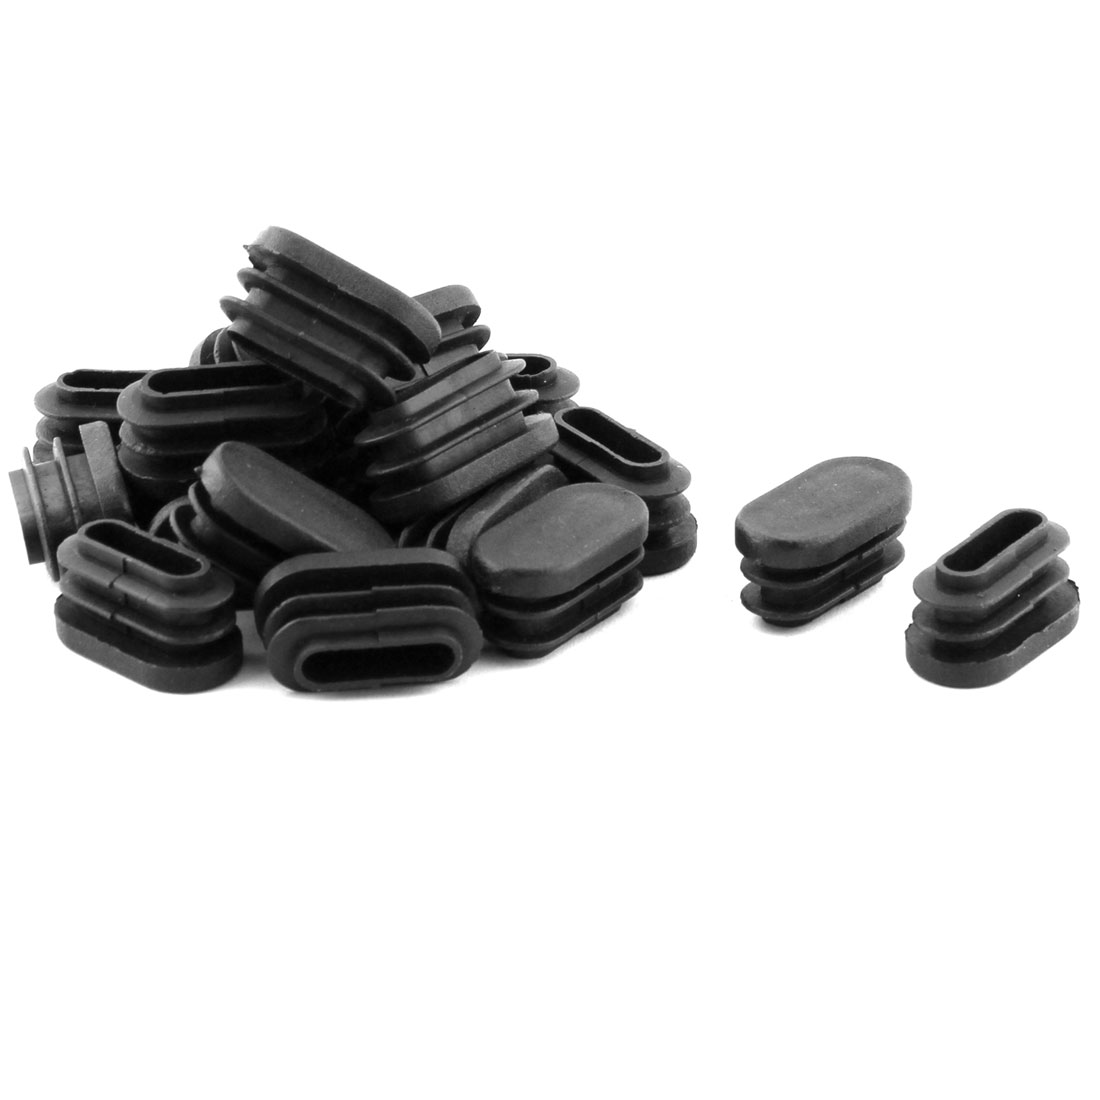 Desk Feet Legs Plastic Oval Shaped Tube Pipe Inserts End Caps Black 20 PCS